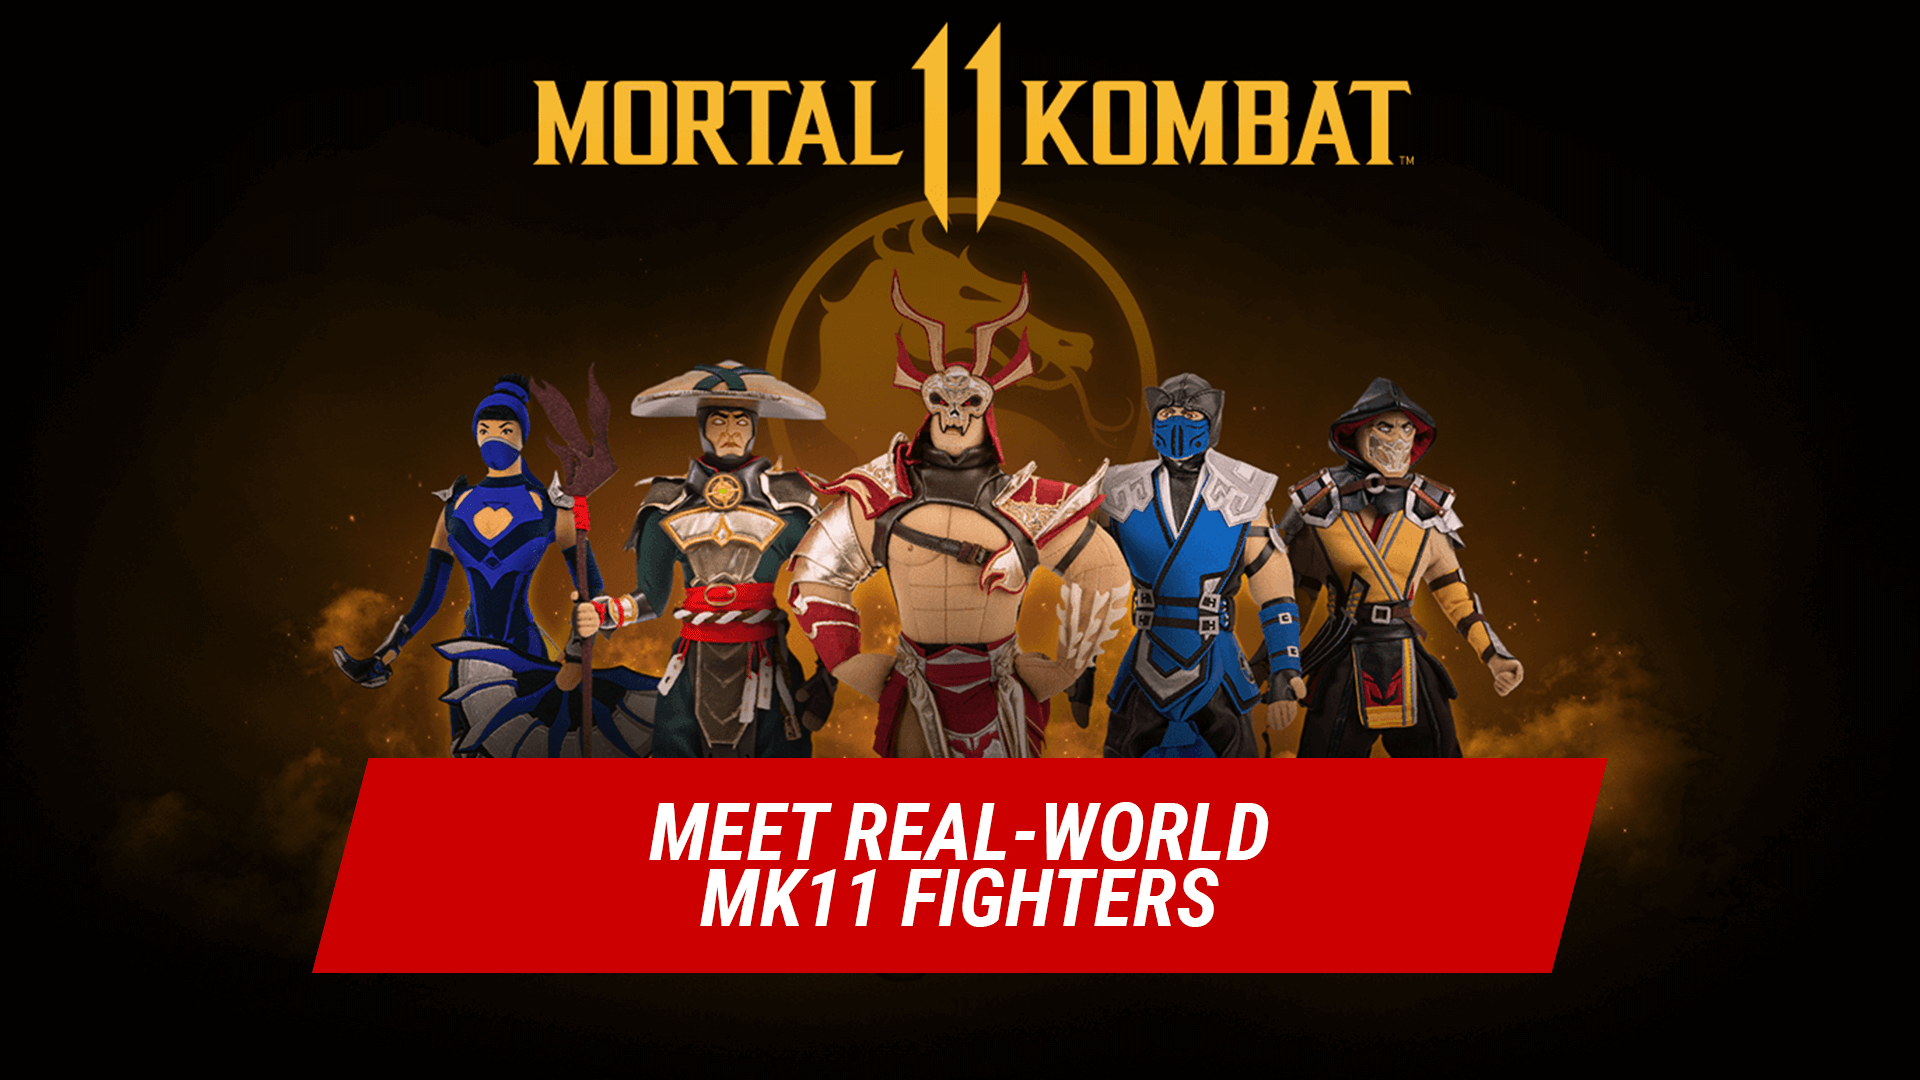 Legendary MK Characters Plush Figures  - for Collectors and Fans